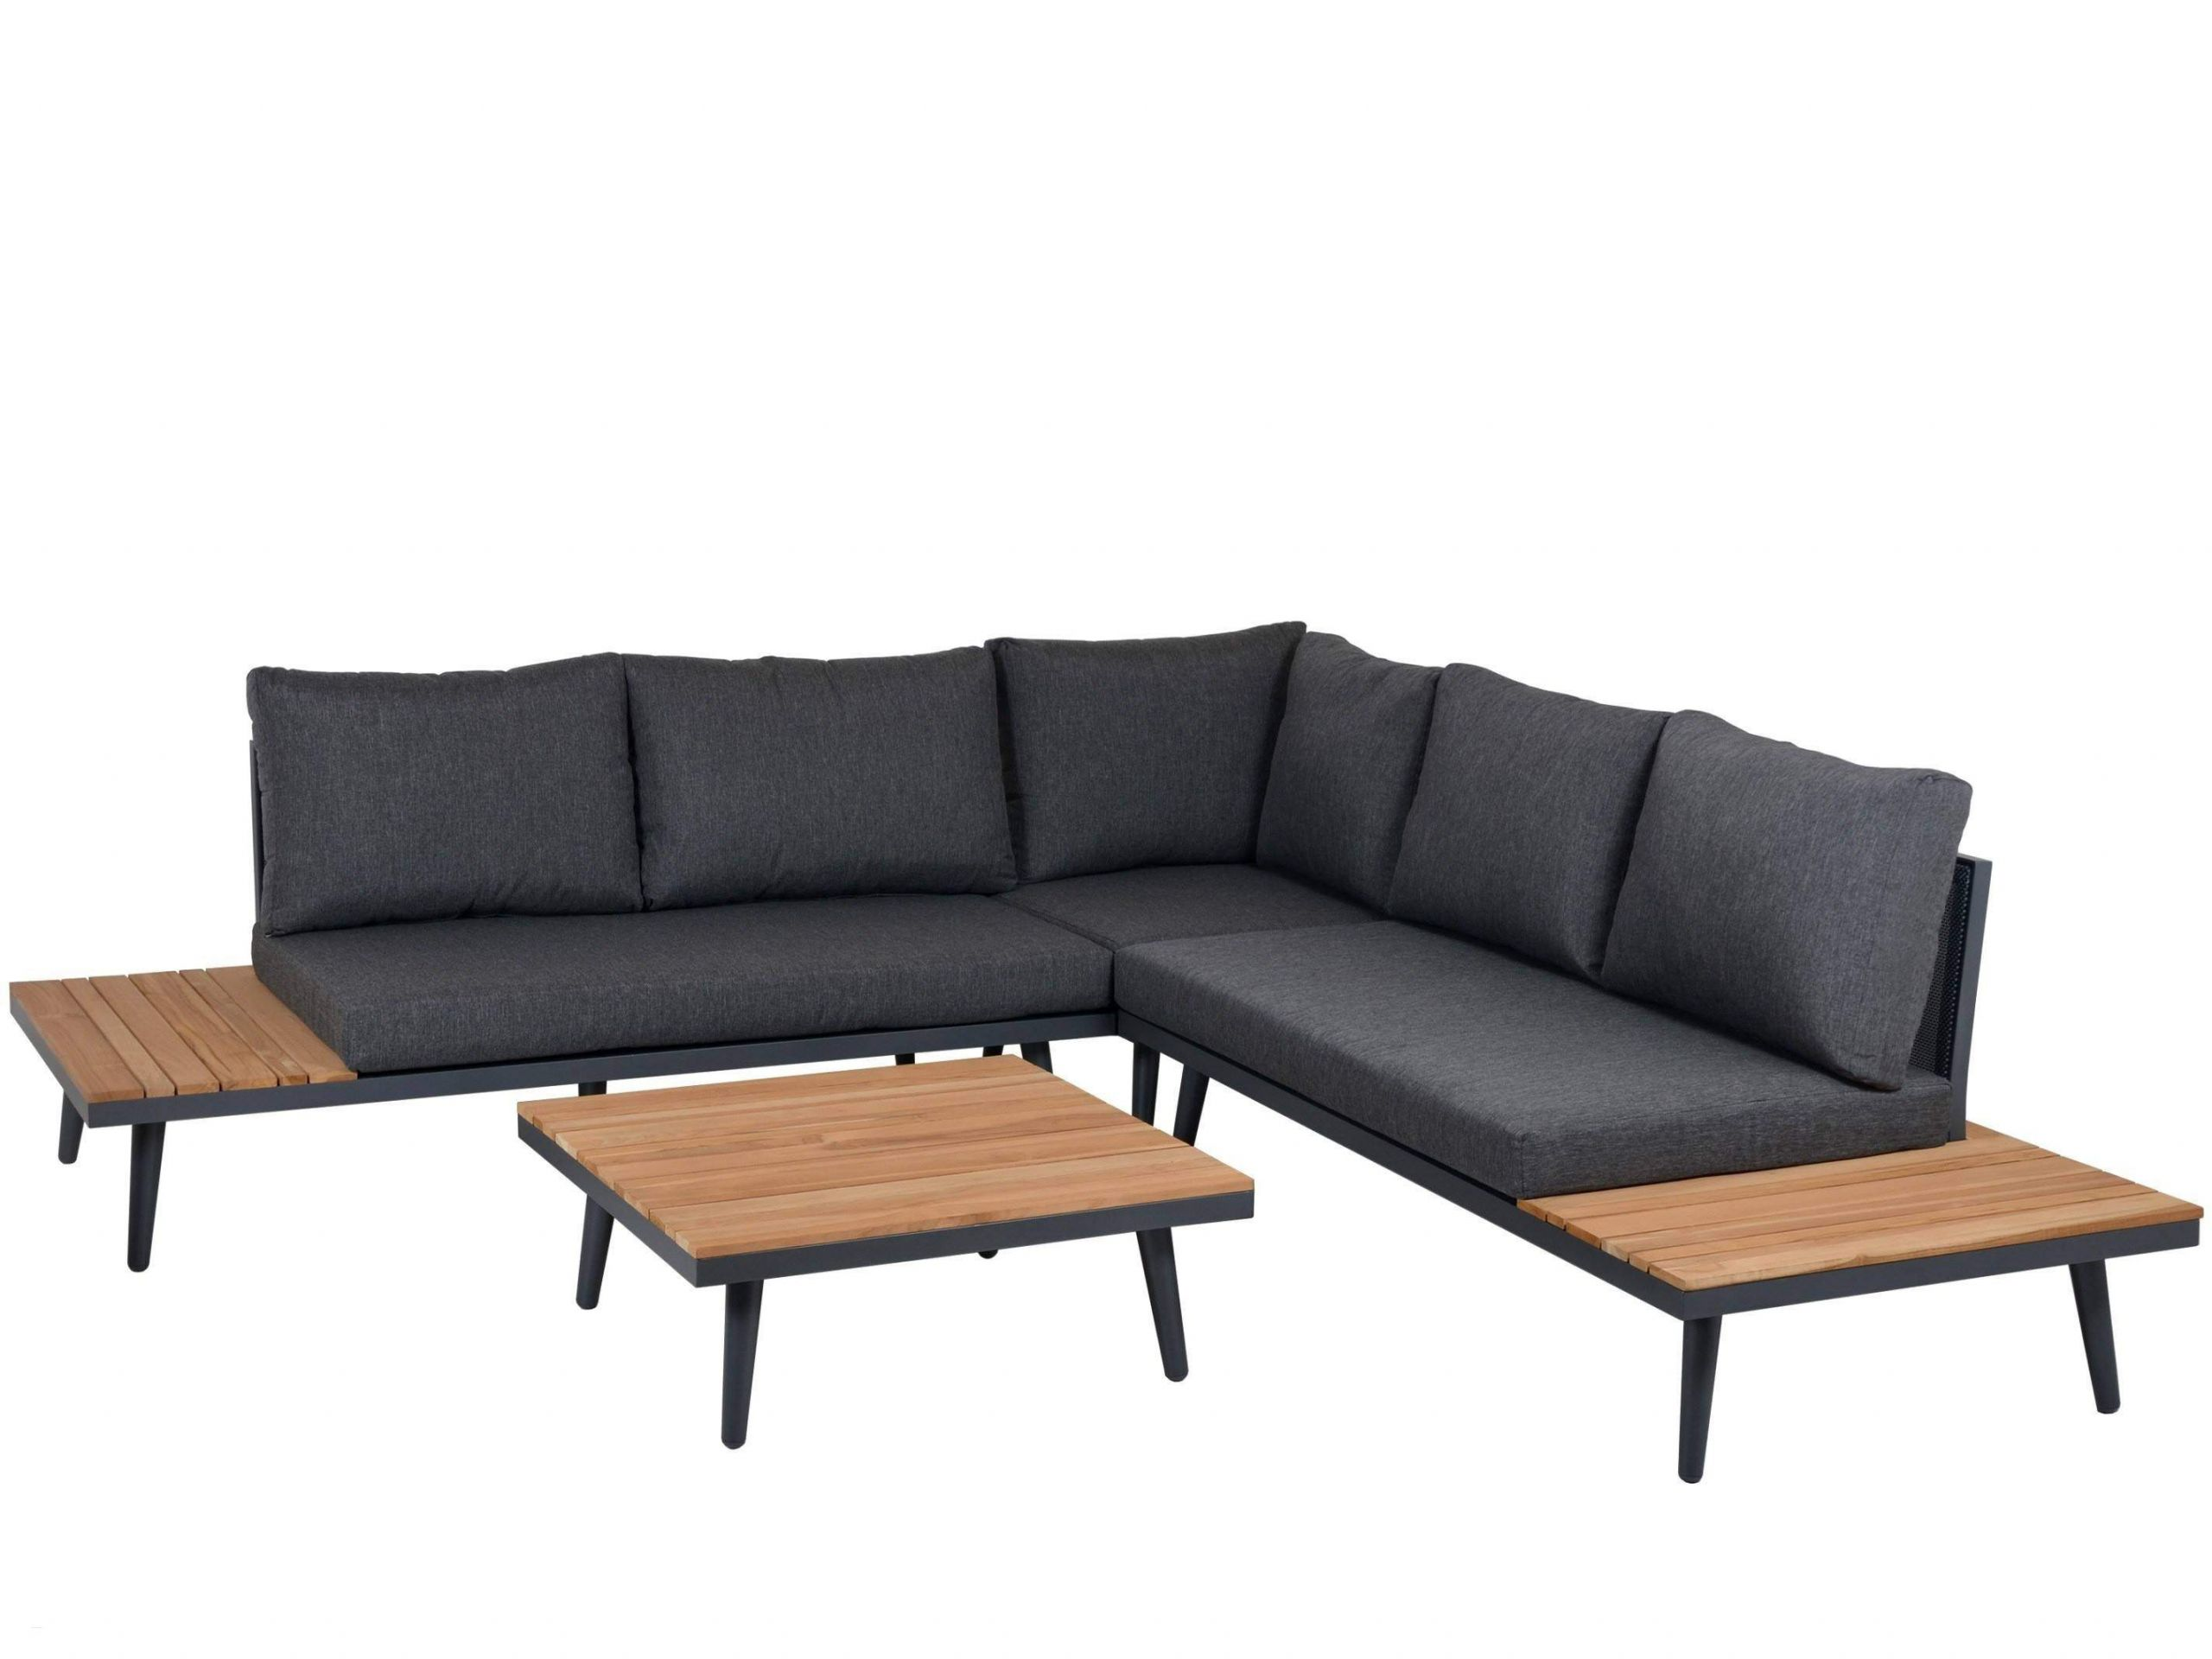 moebel boss de wohnzimmer polstermoebel lovely sofa set clearance beautiful home design sears outlet patio designer of moebel boss de wohnzimmer polstermoebel